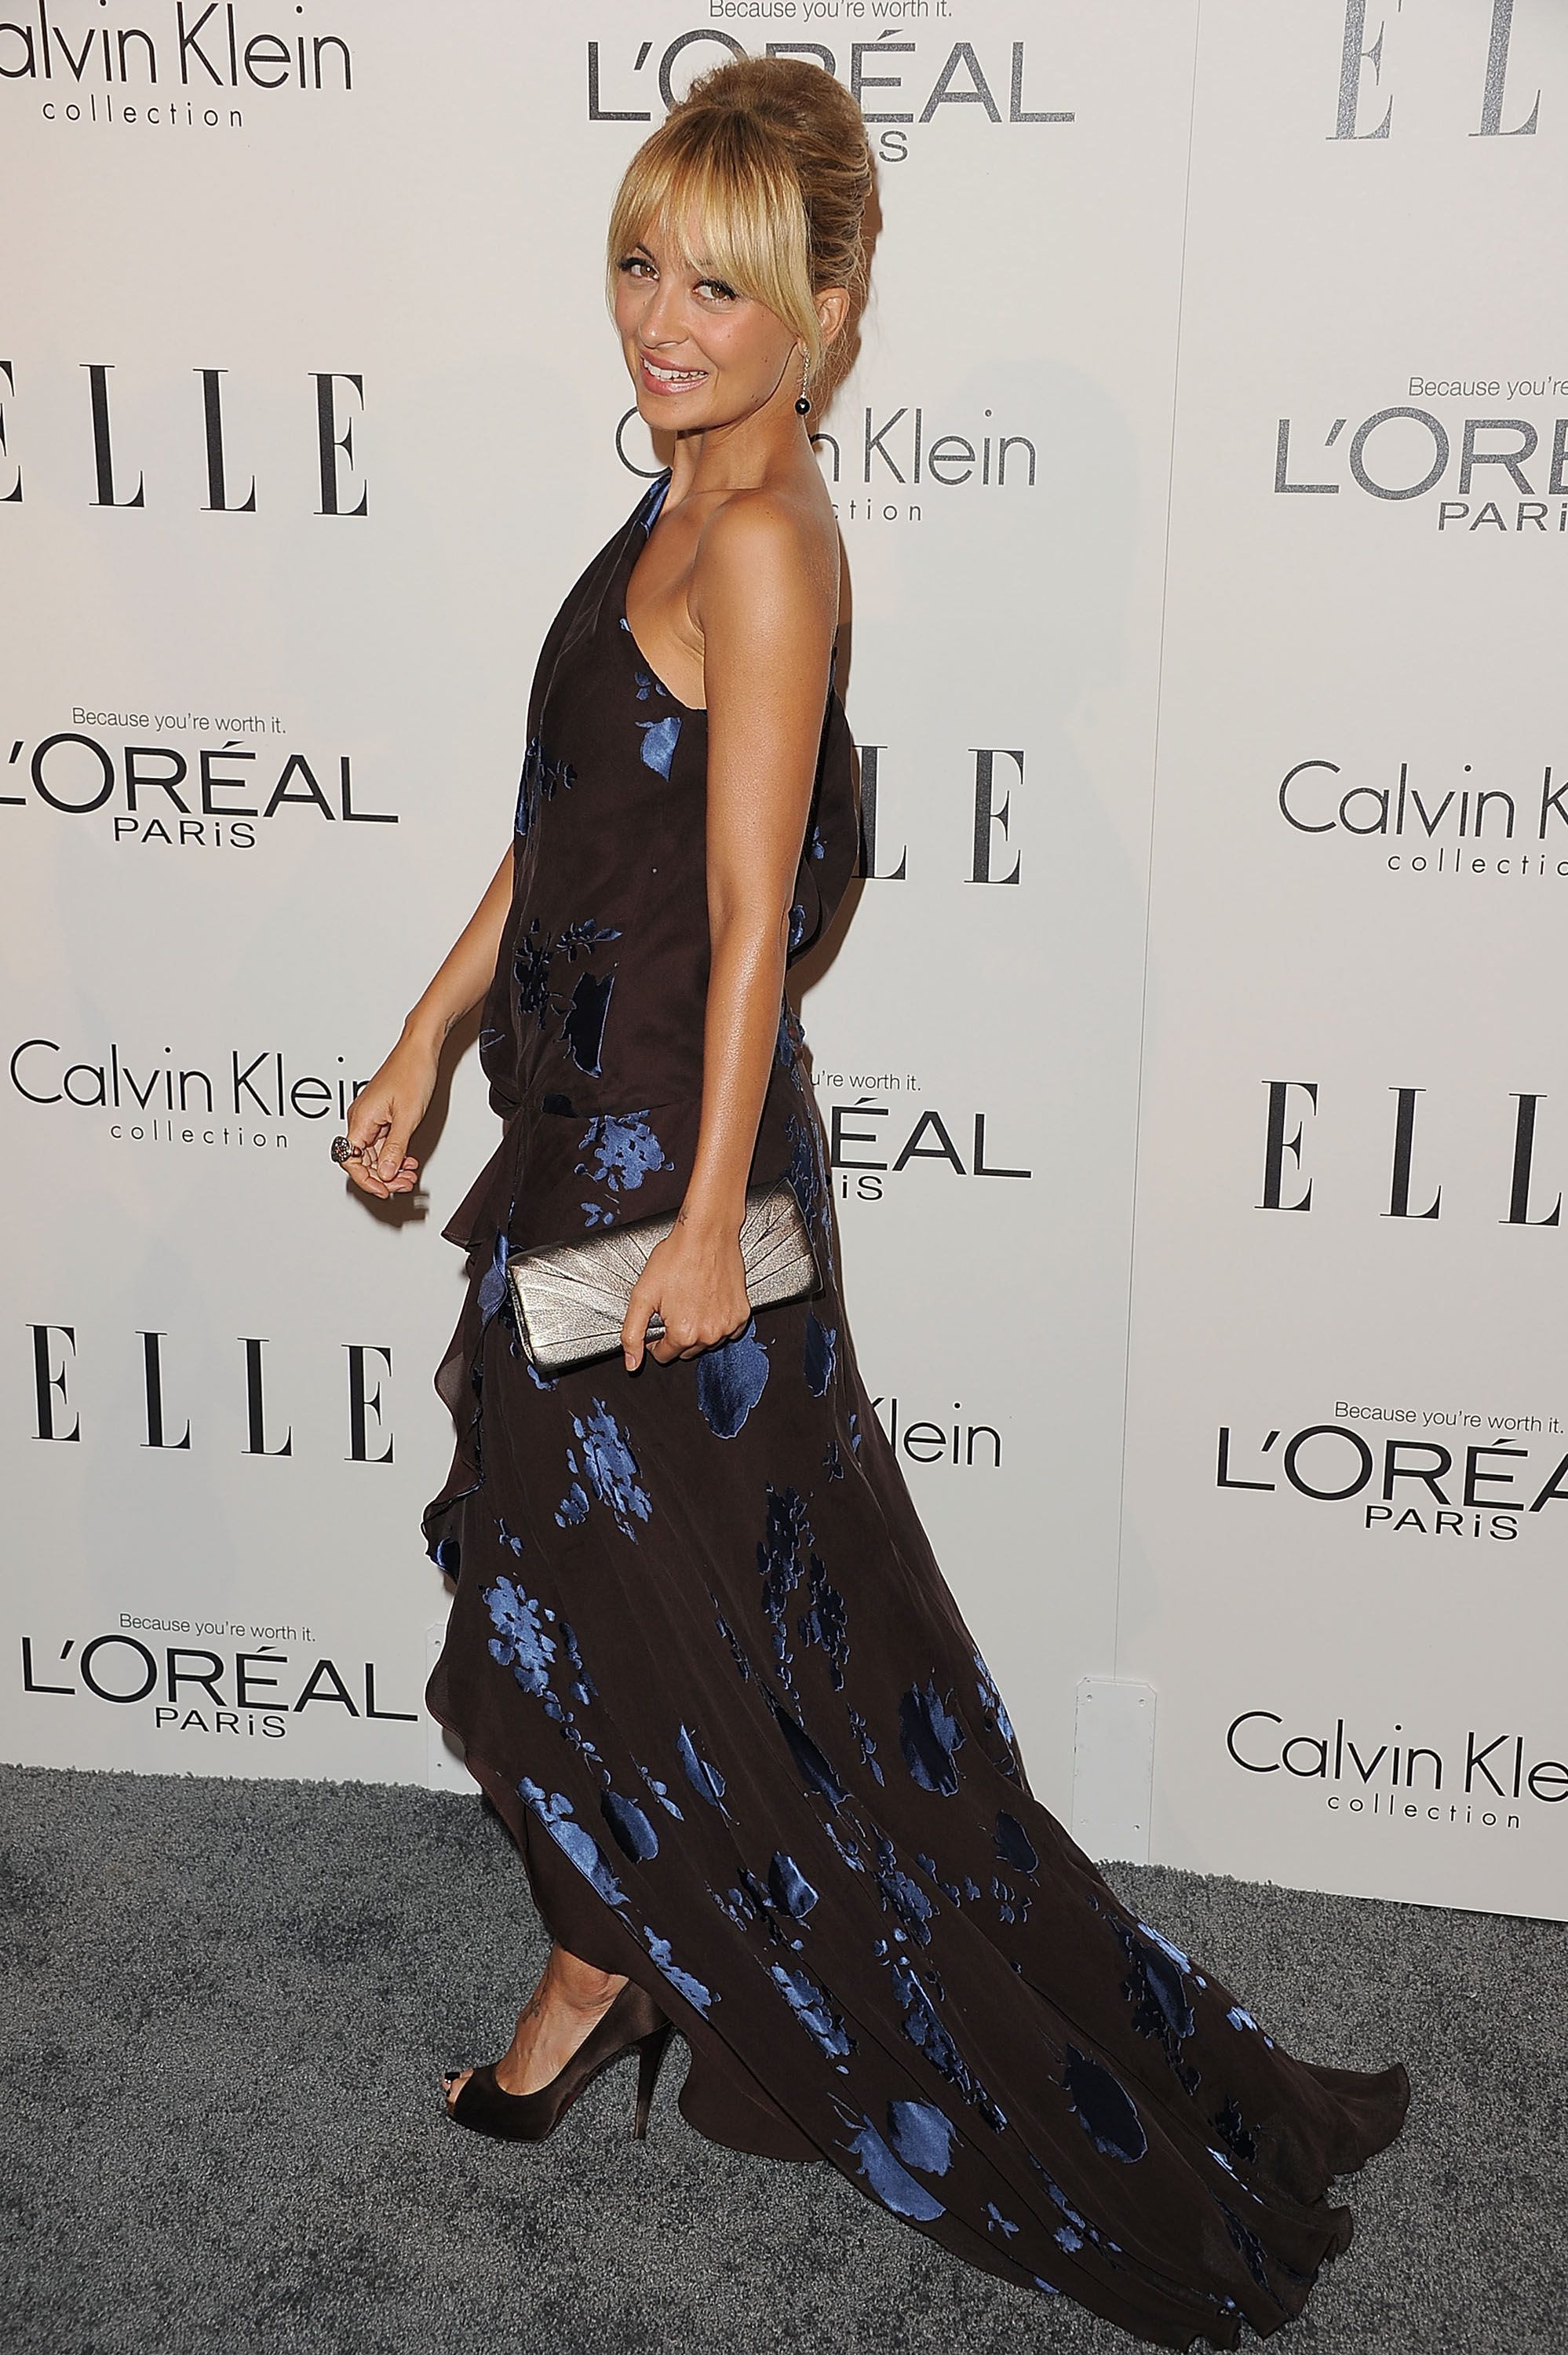 Nicole Richie on the red carpet for an Elle event.